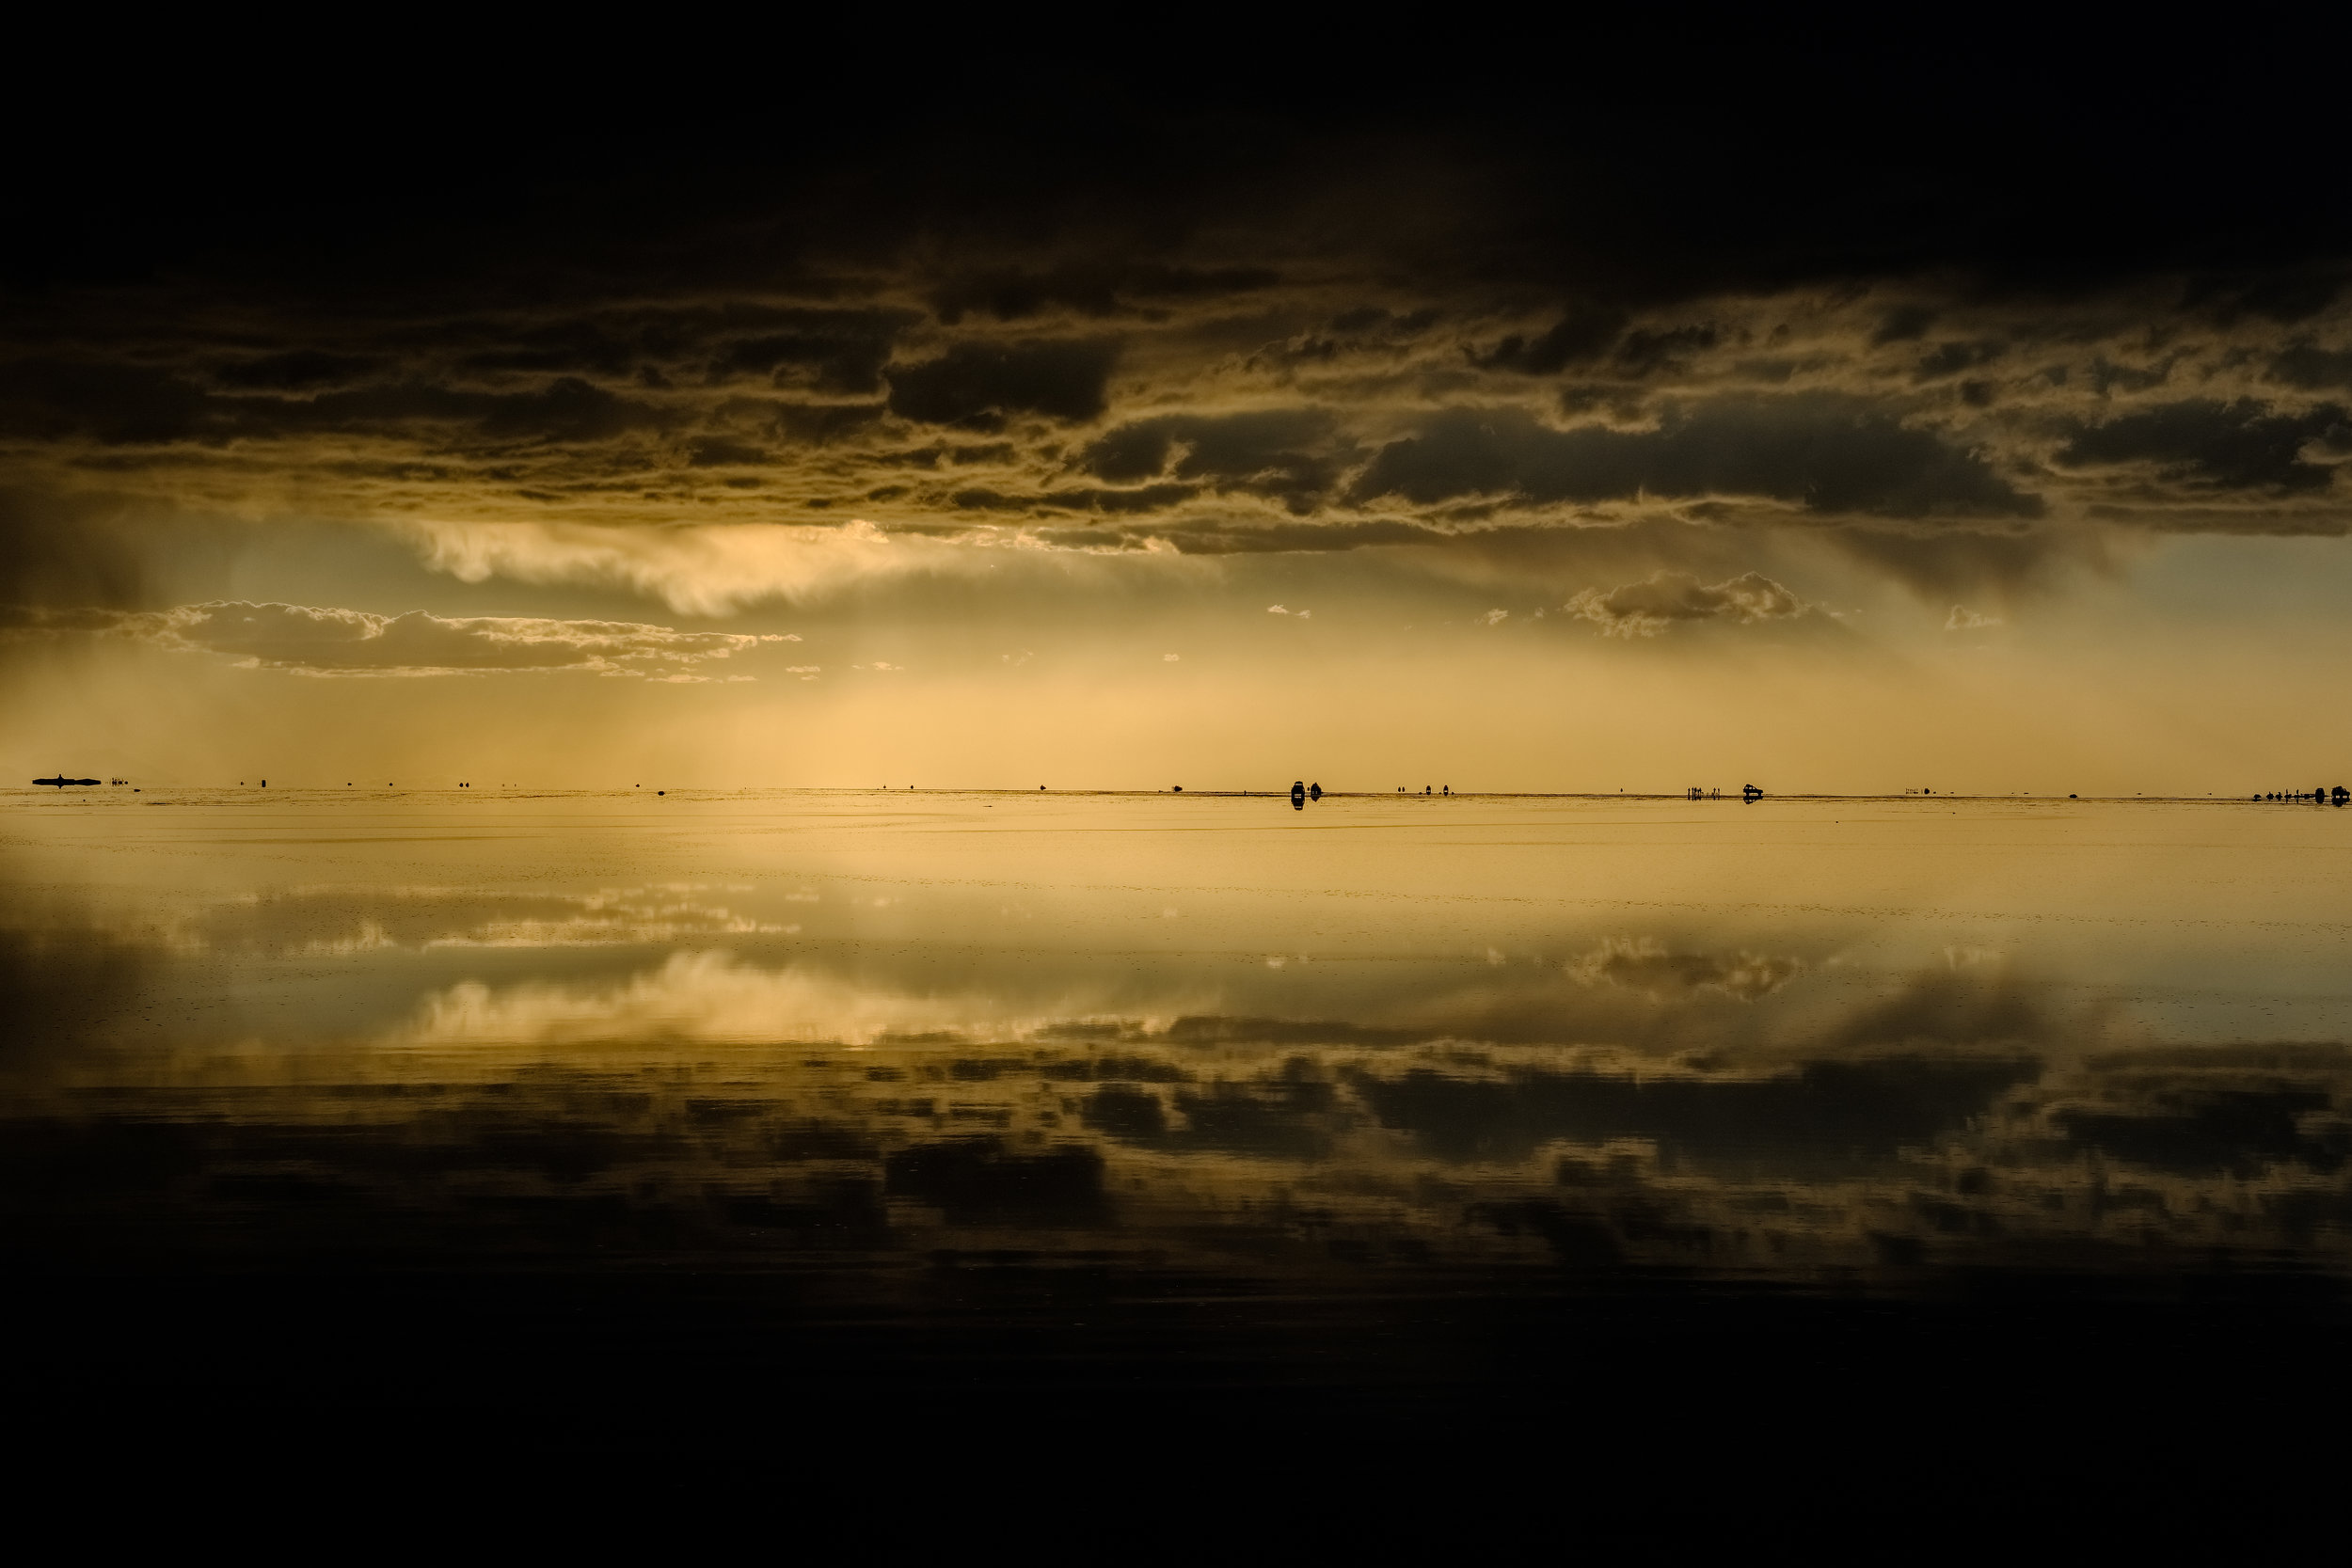 Fred+Howarth+Photography_Uyuni+Salt+Flats+Storm.jpg